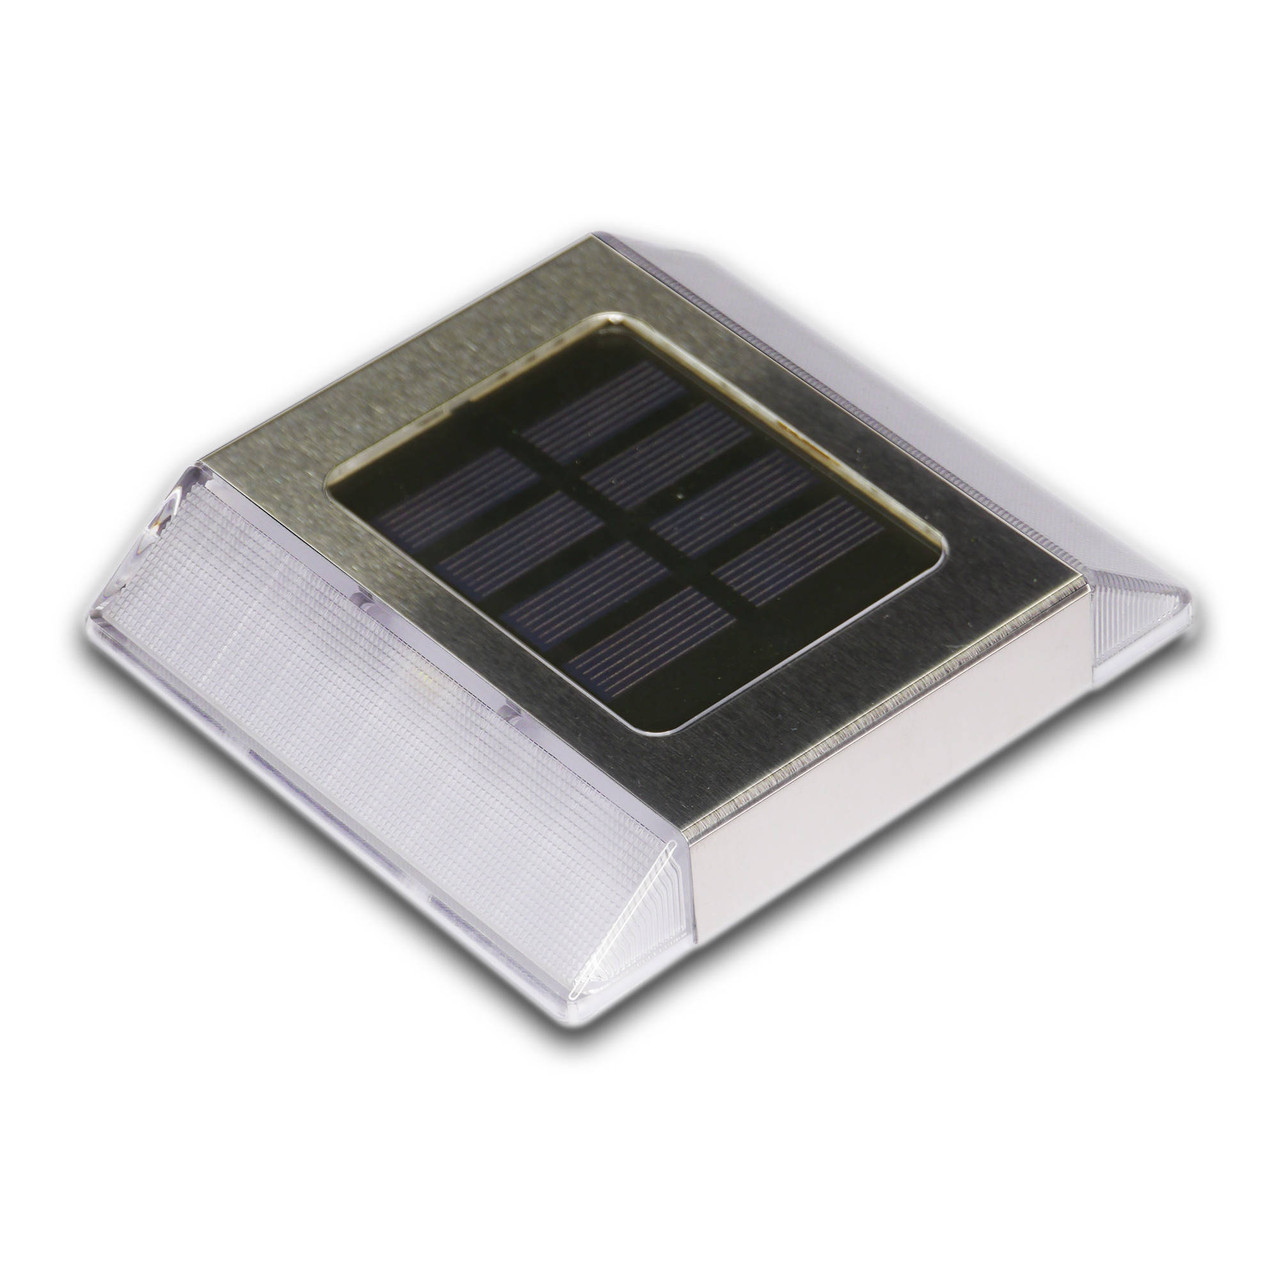 Stainless Steel Solar Path Light (SL499) from Classy Caps